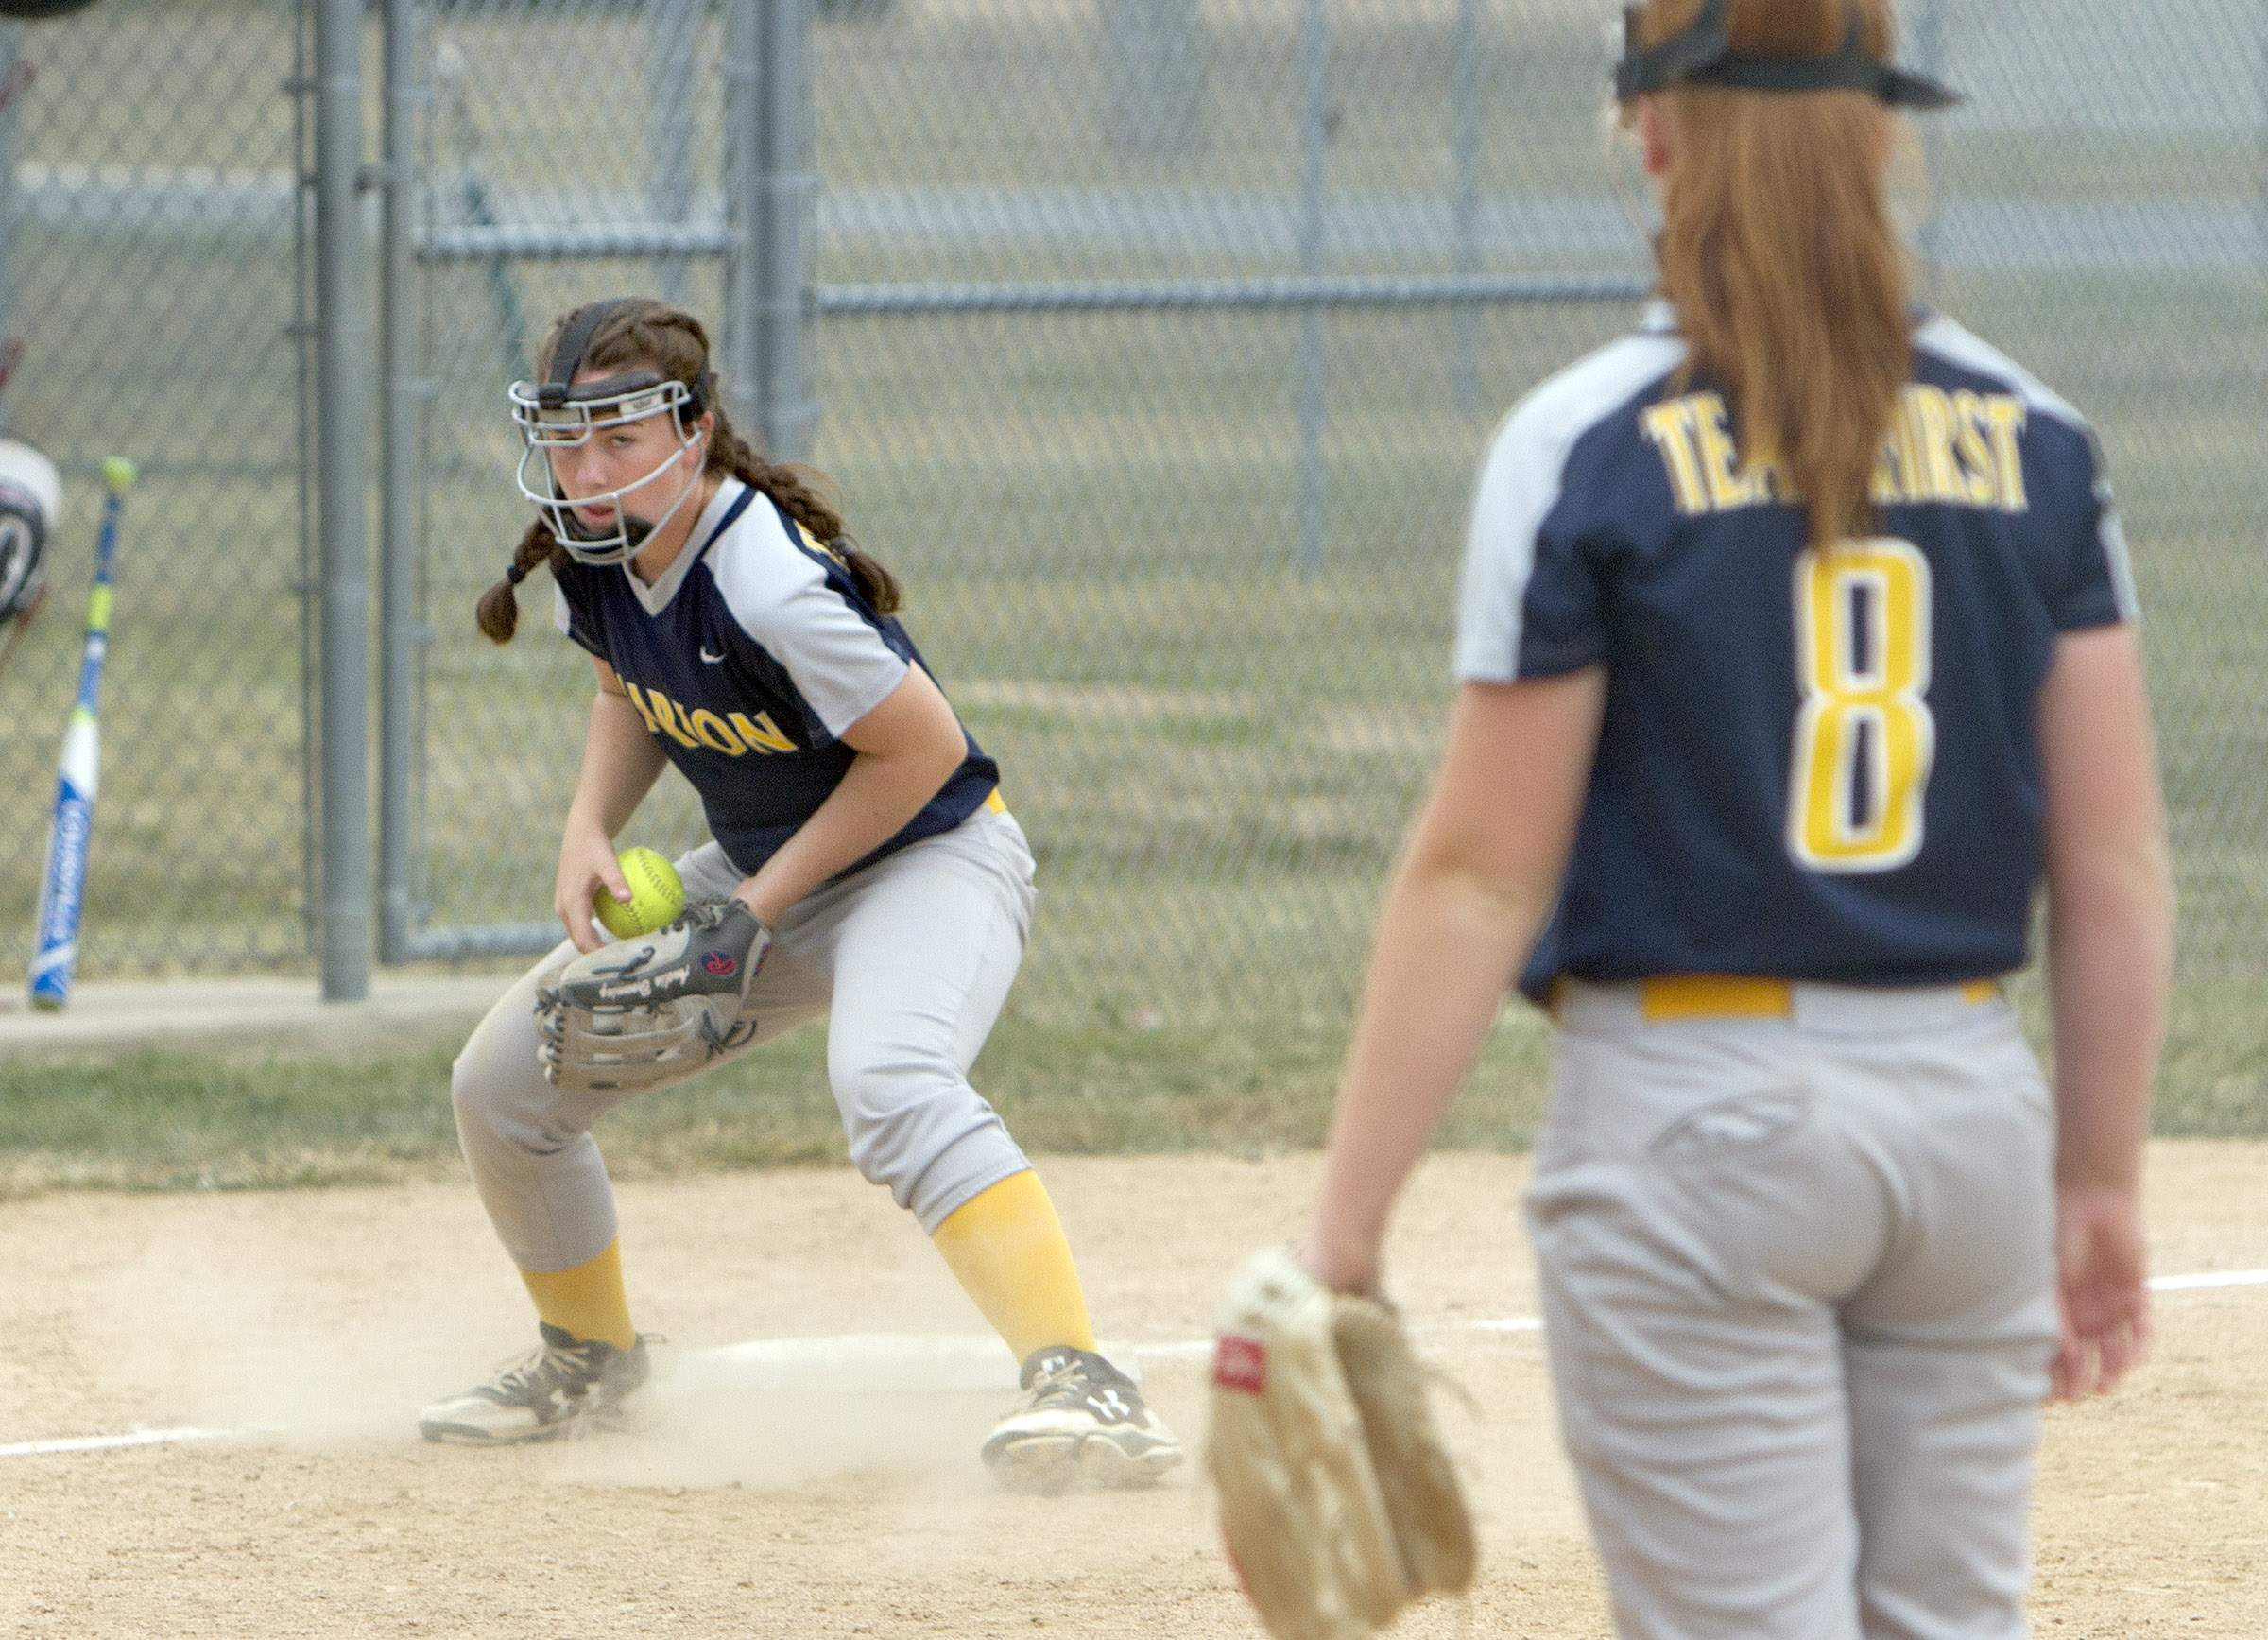 Amelia Browning fields a grounder.